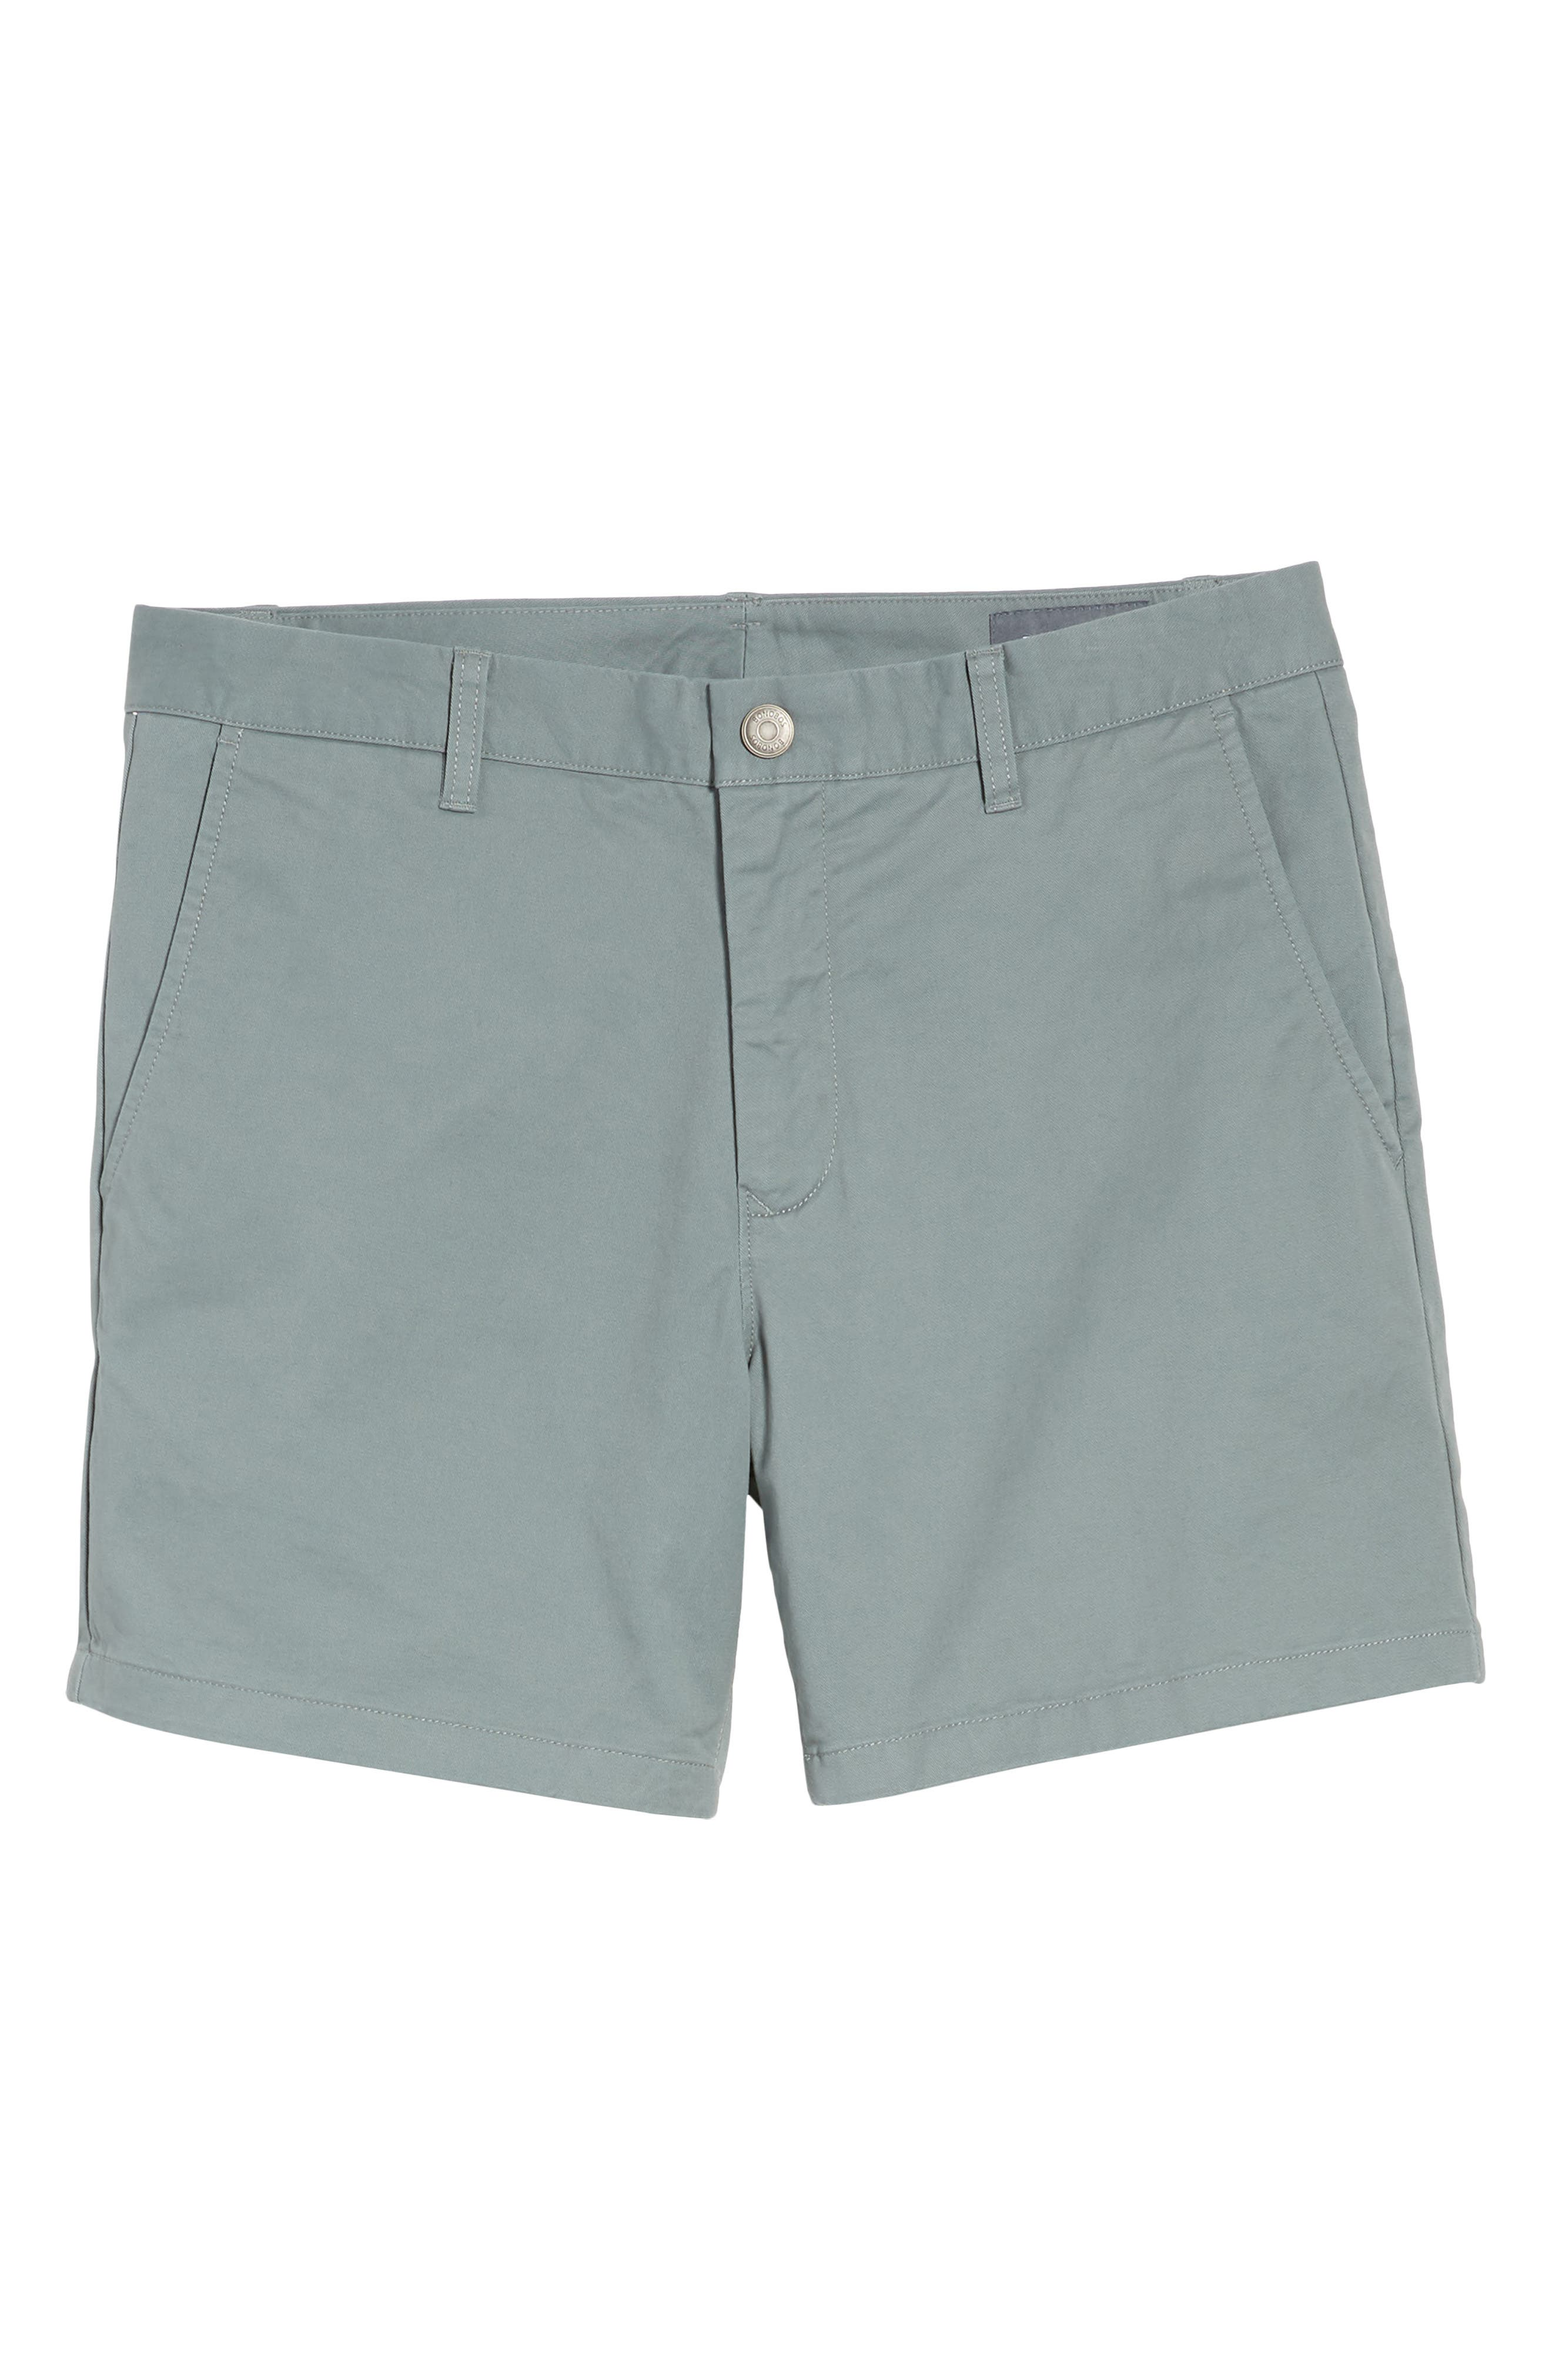 Stretch Washed Chino 5-Inch Shorts,                             Alternate thumbnail 144, color,